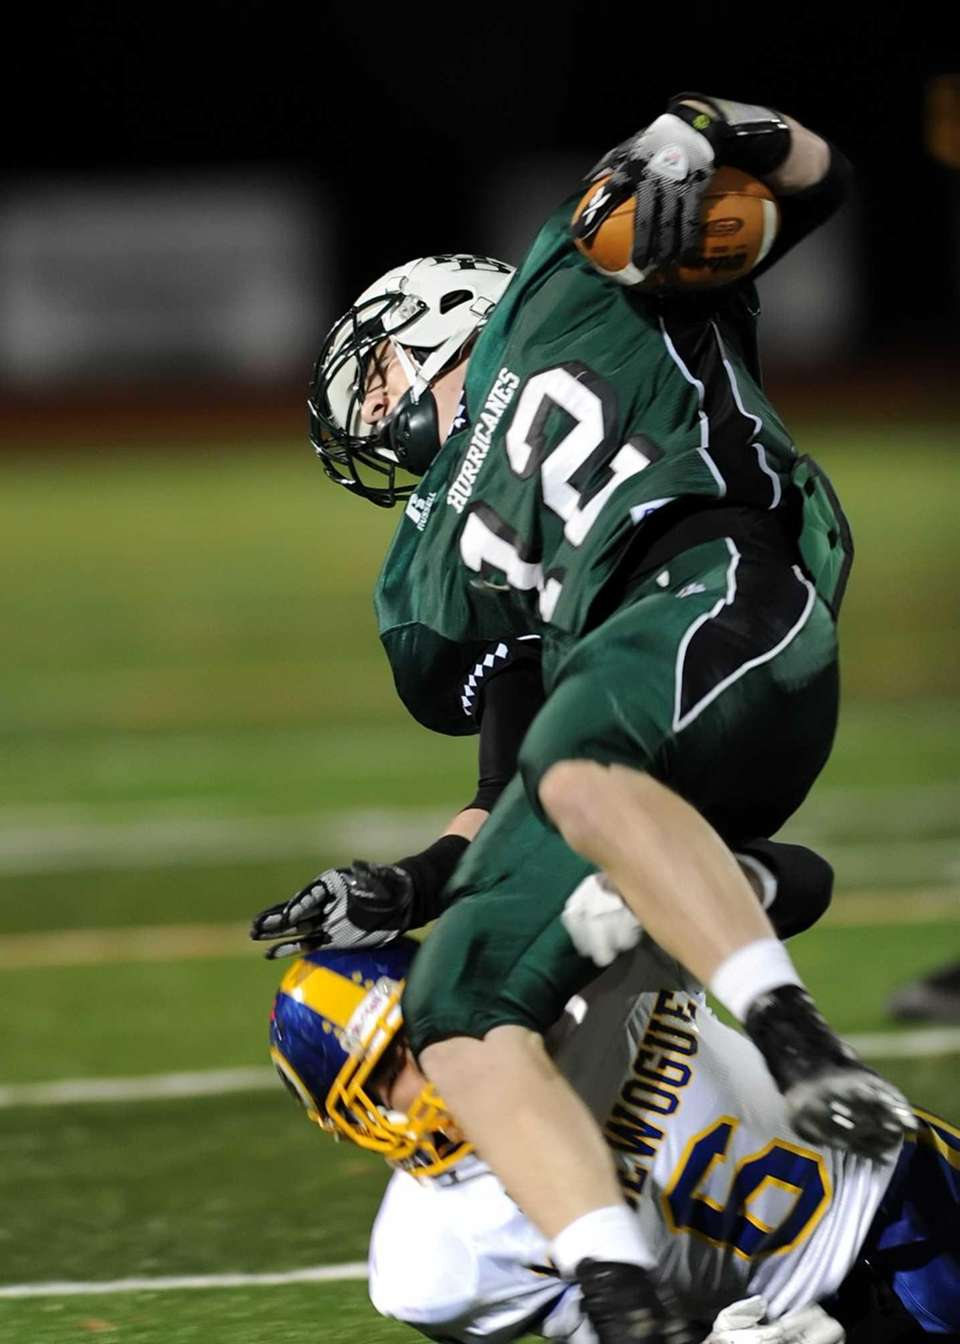 Westhampton's Brian Corrigan is tripped up by Comsewogue's